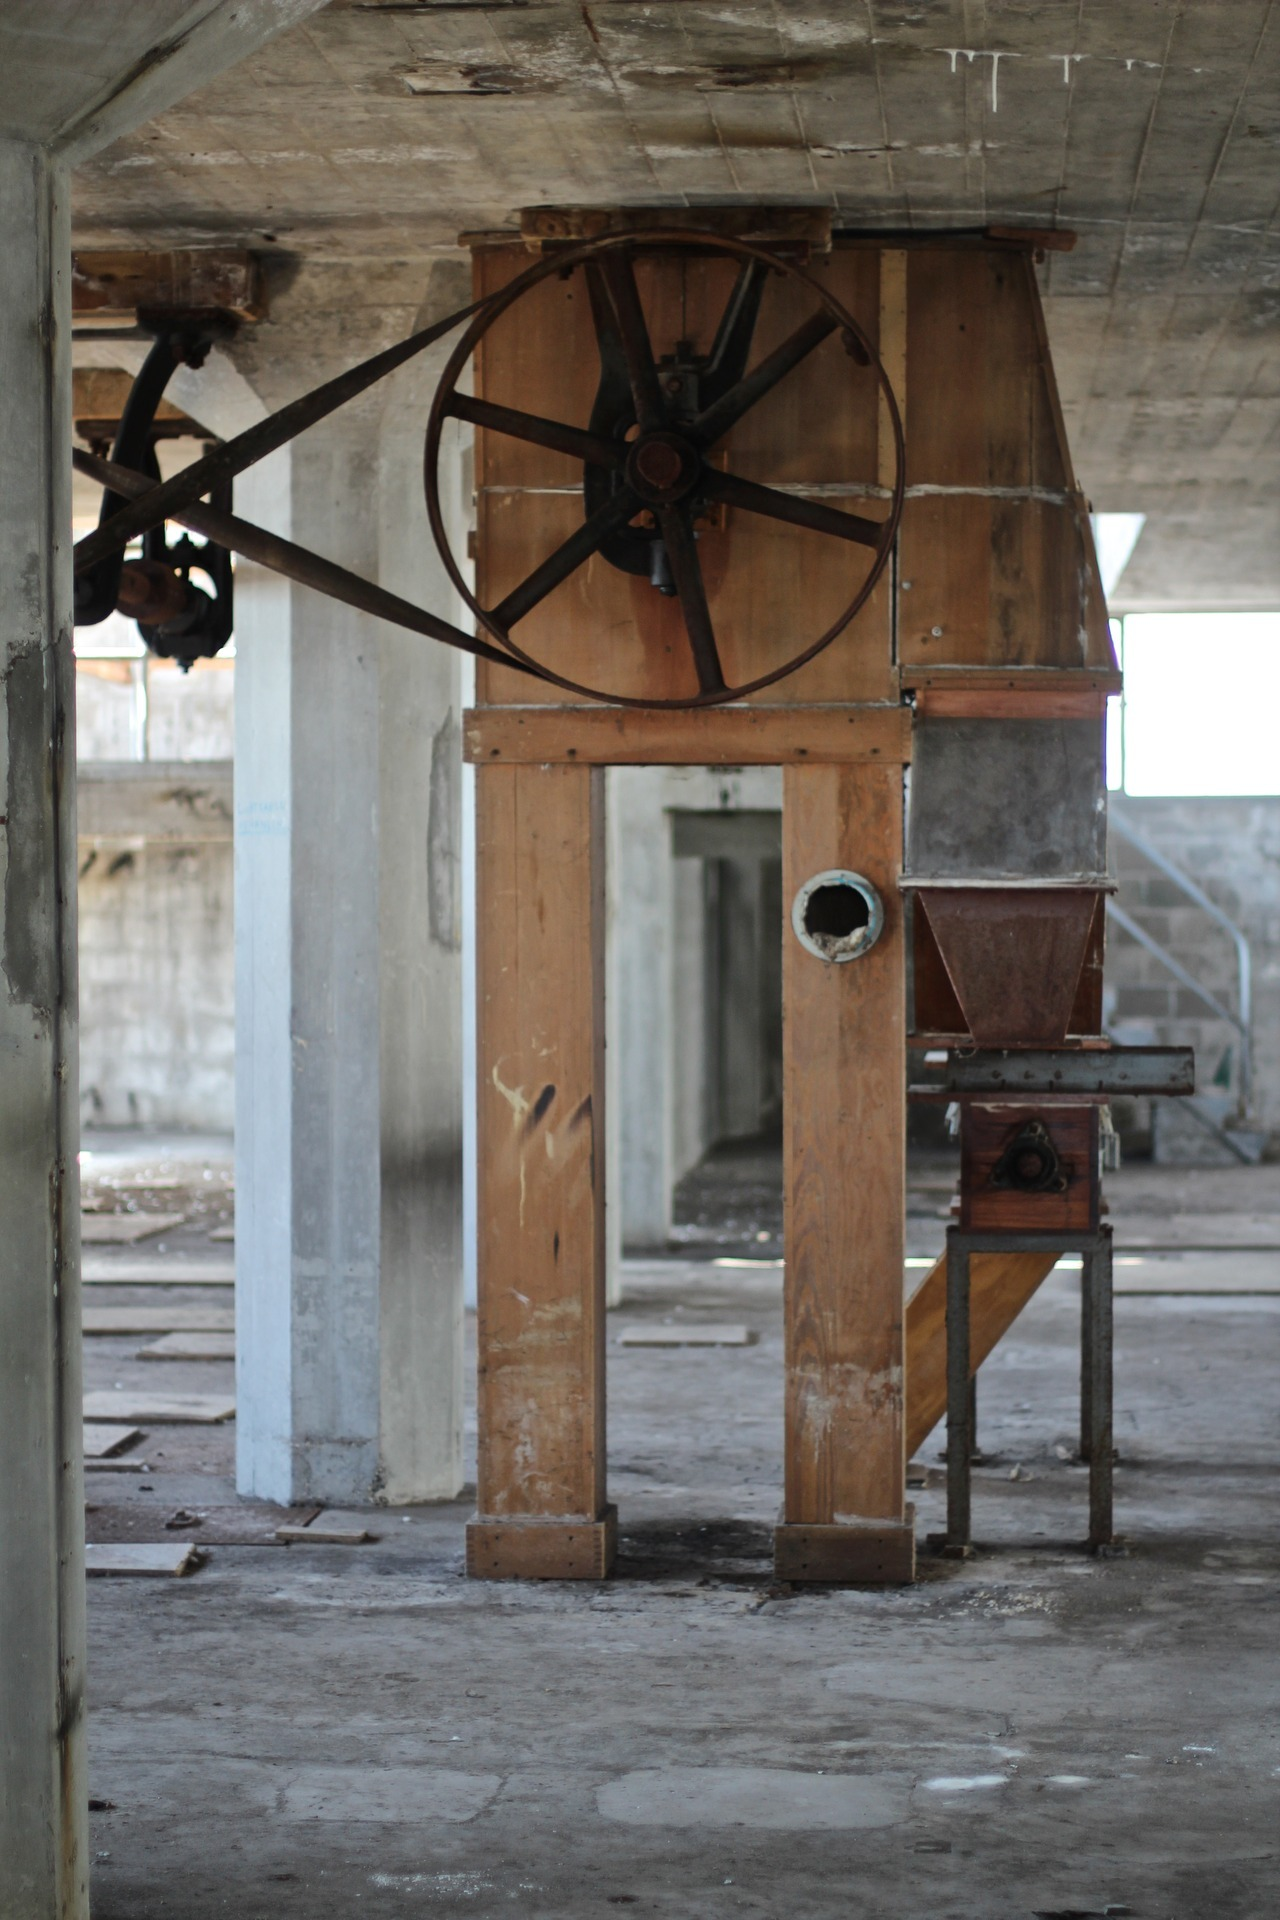 De Meelfabriek - Cogs and Pulleys